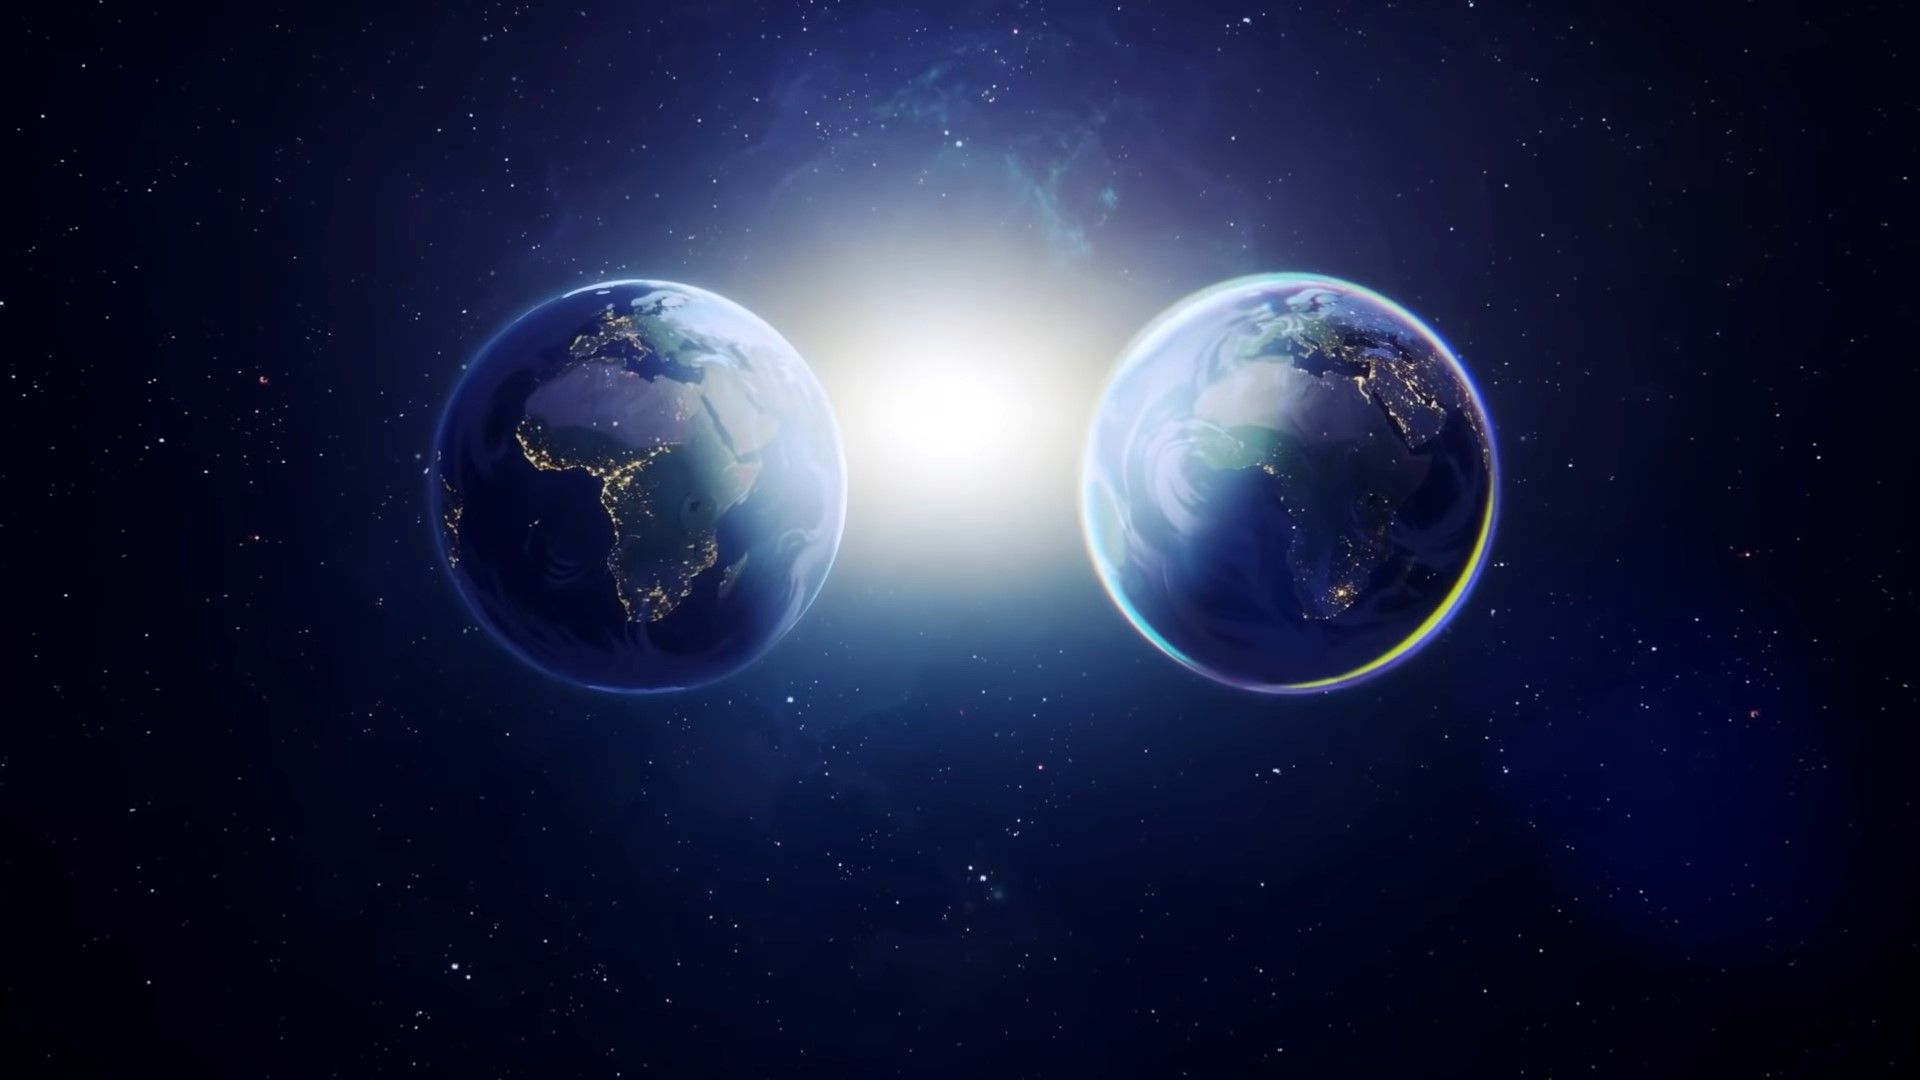 Original Earth on the left, Mirrored Earth on the right